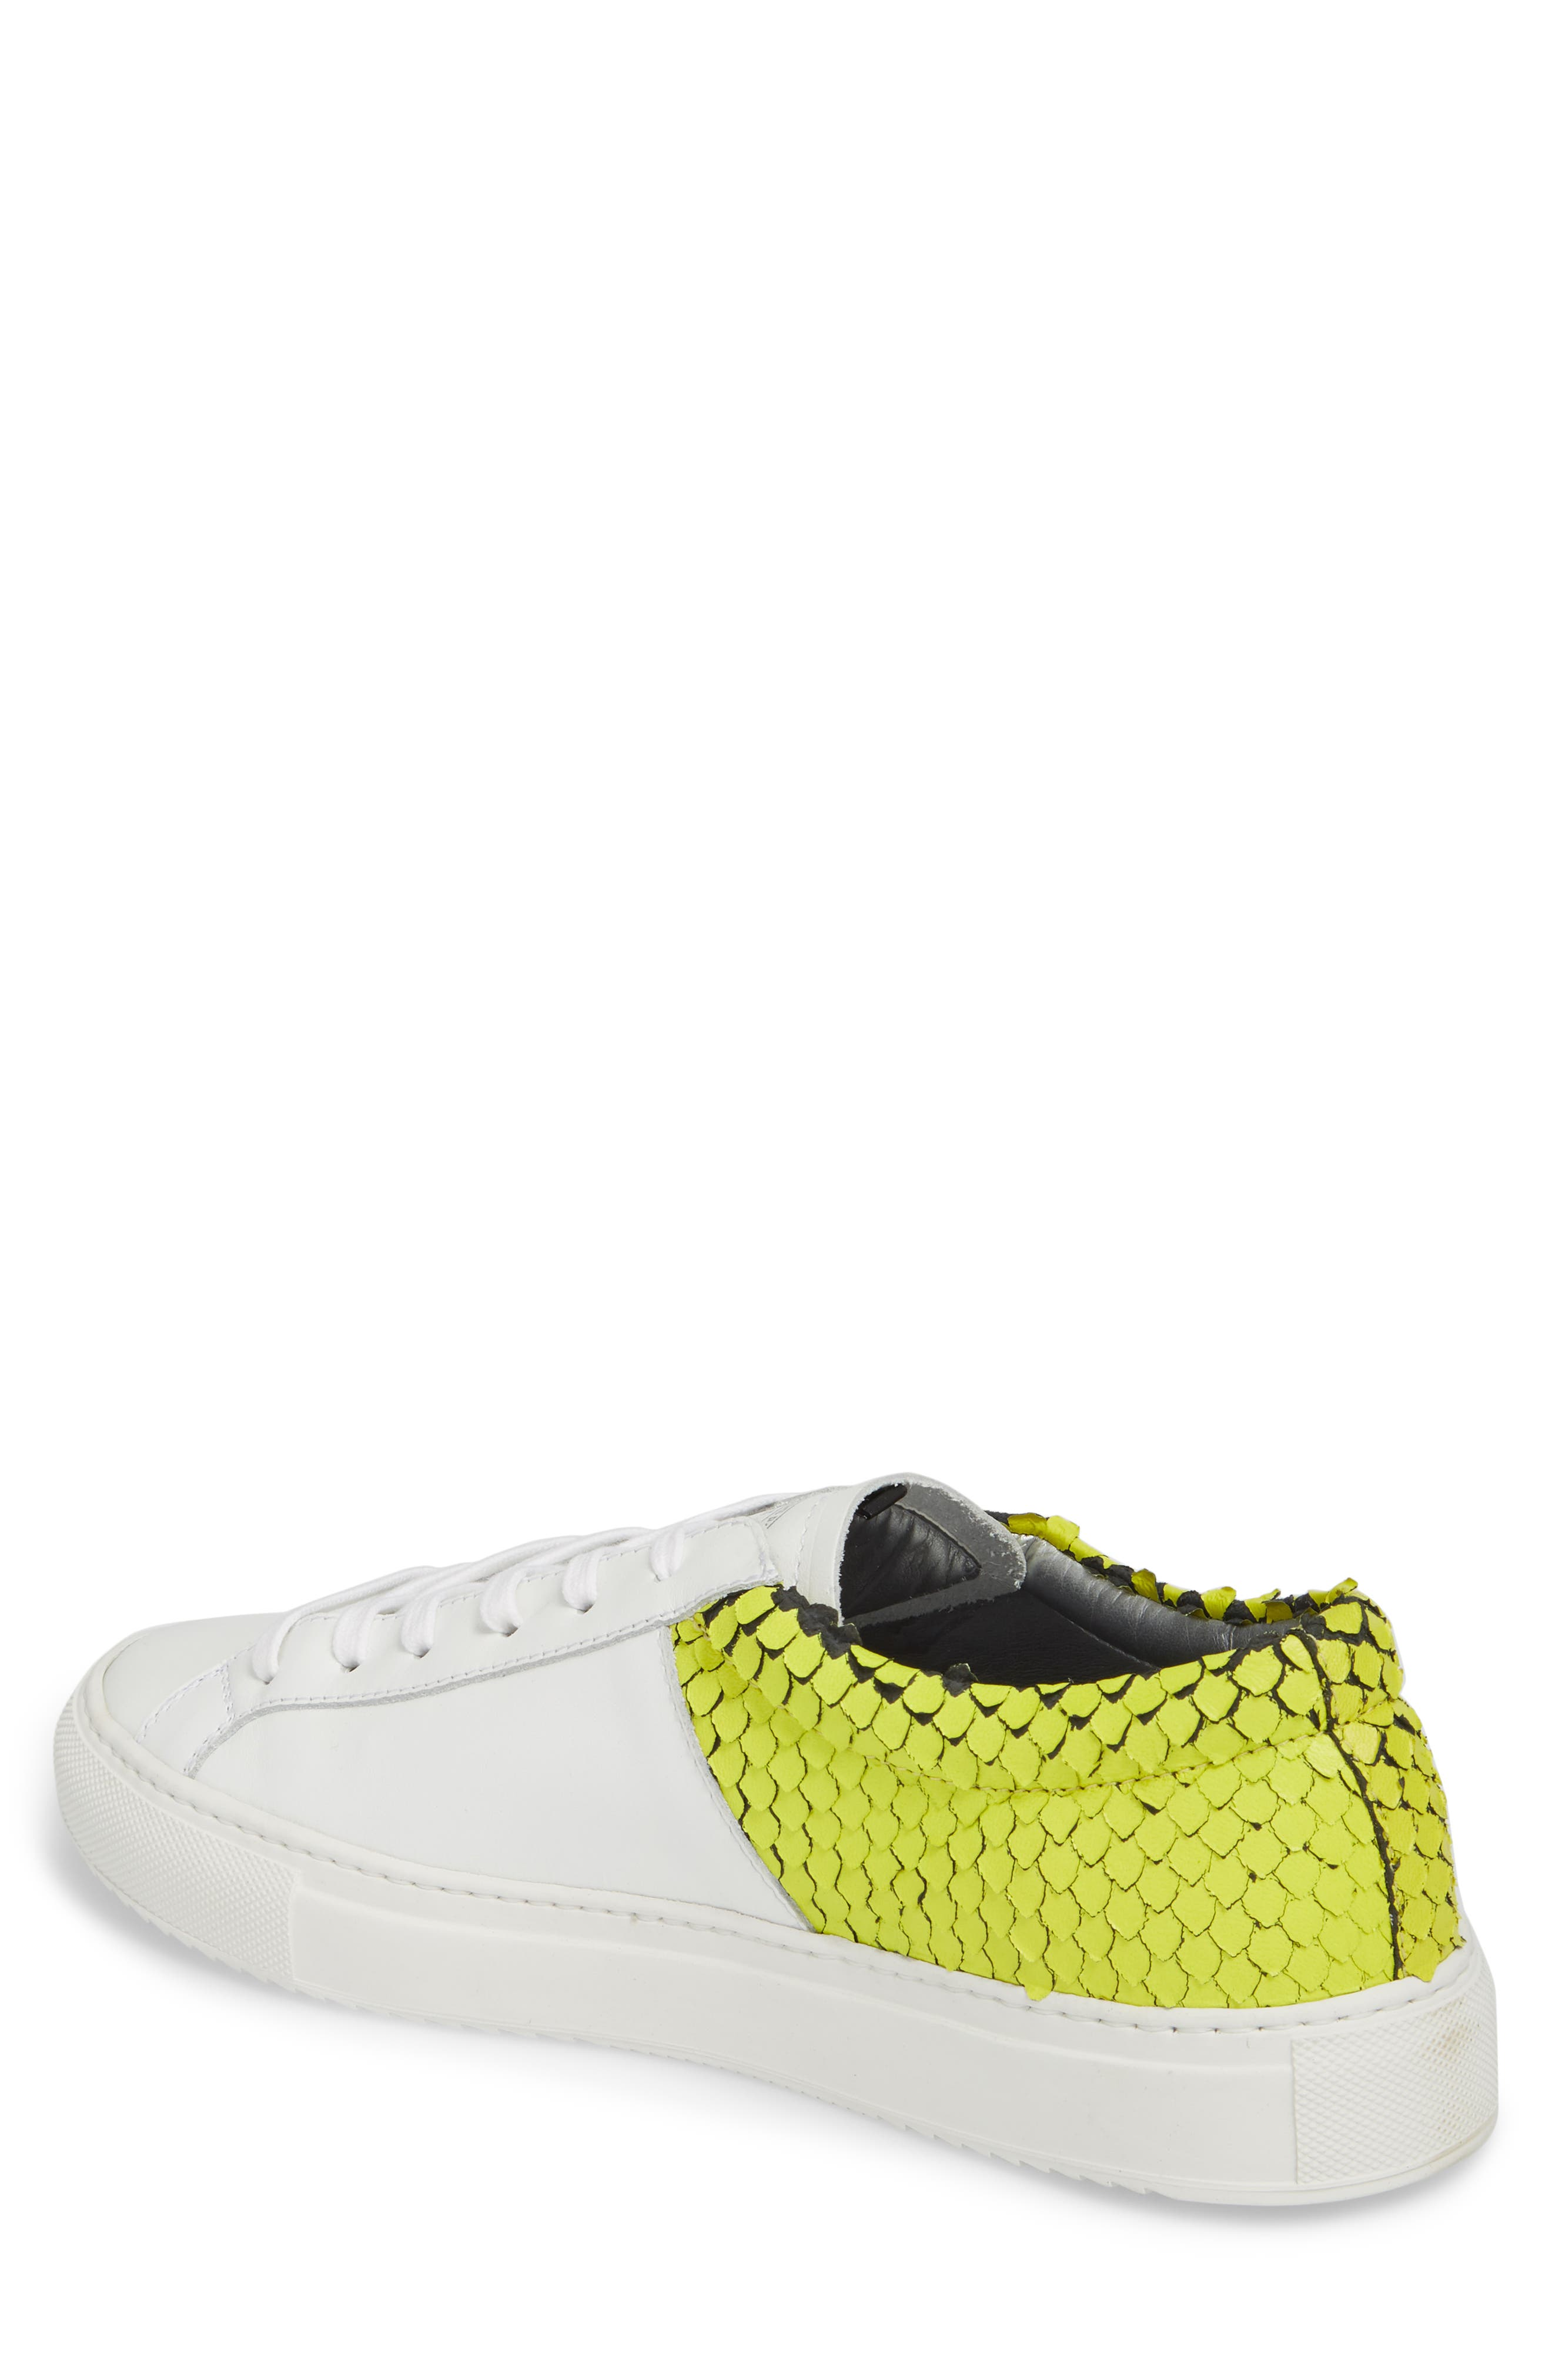 Onec Textured Low Top Sneaker,                             Alternate thumbnail 2, color,                             Python White